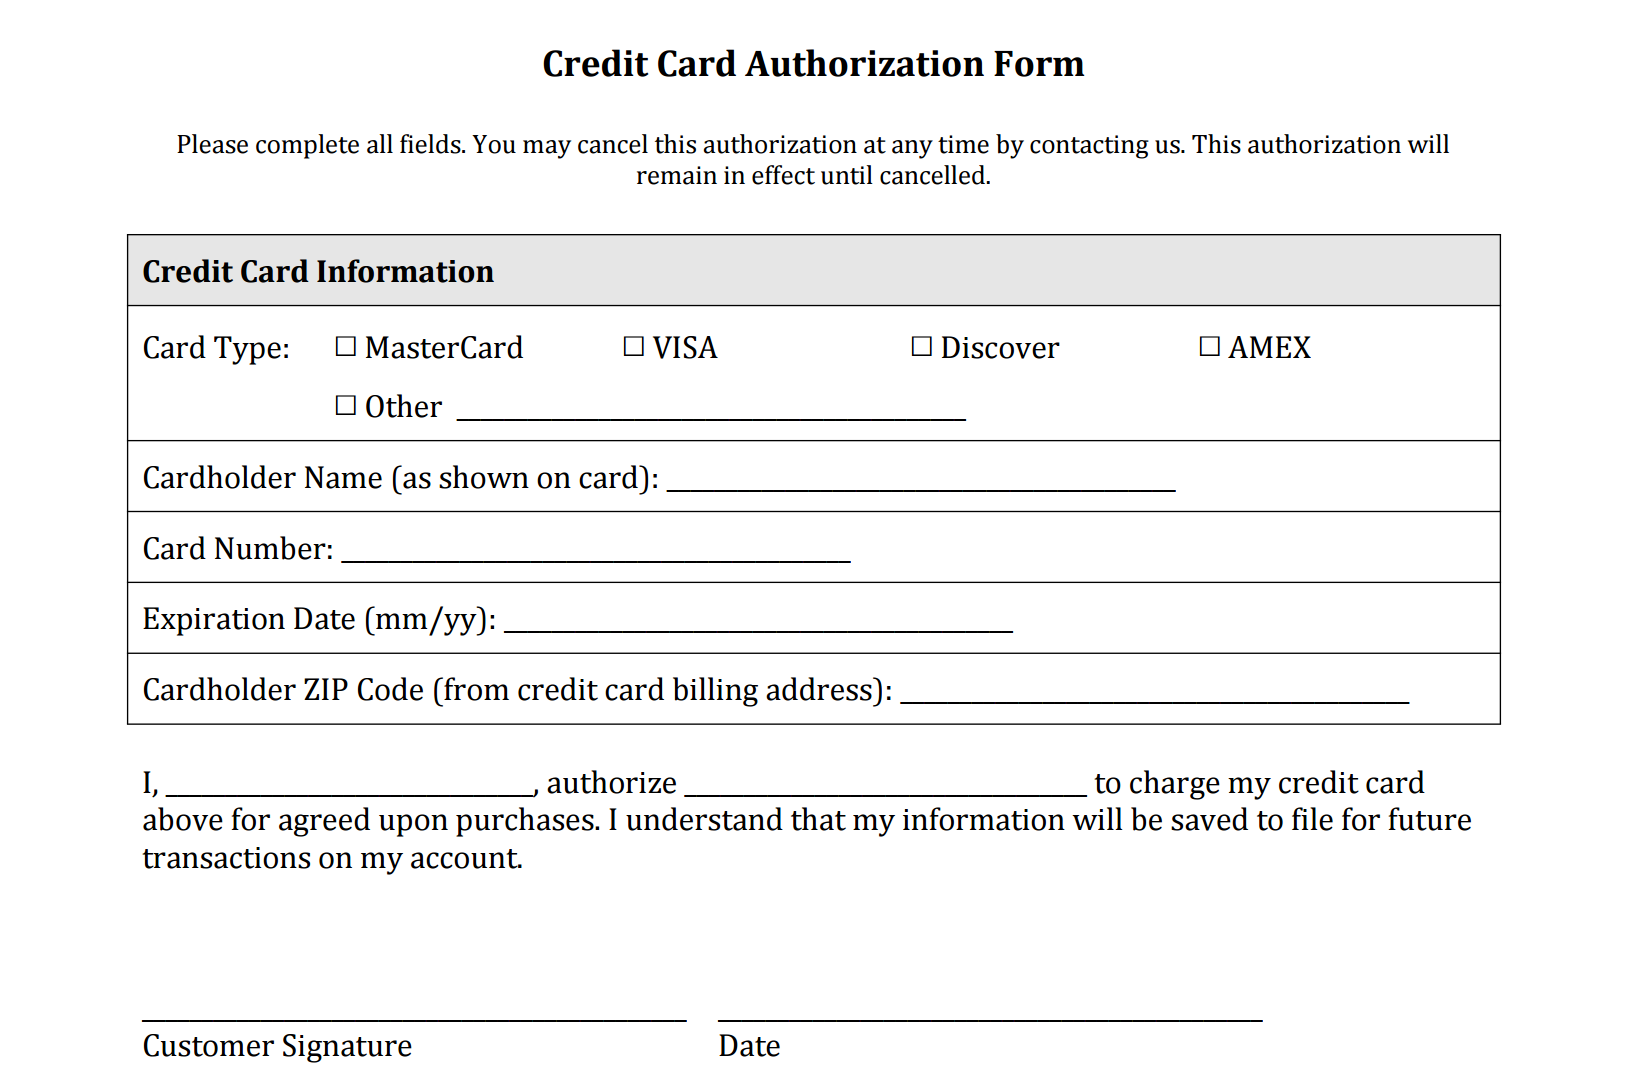 Credit card authorization form templates download credit authorization form xflitez Gallery